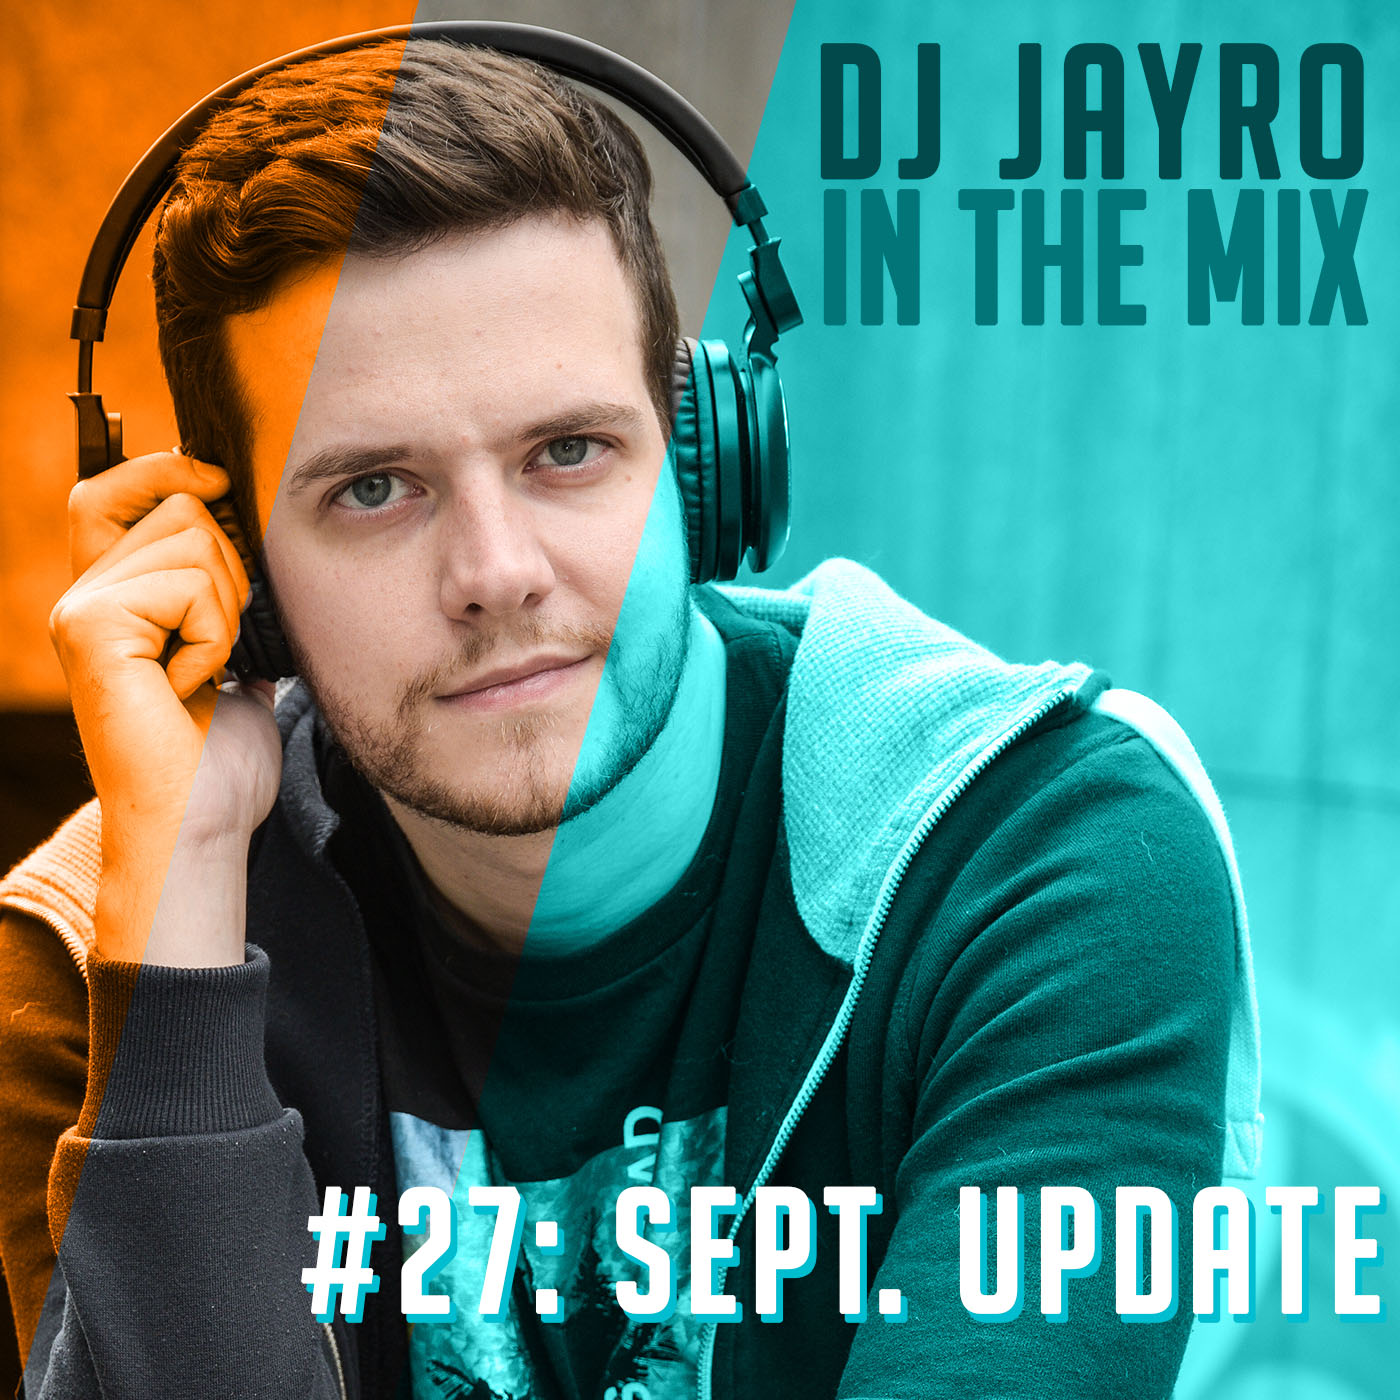 Artwork for podcast DJ JayRo In The Mix